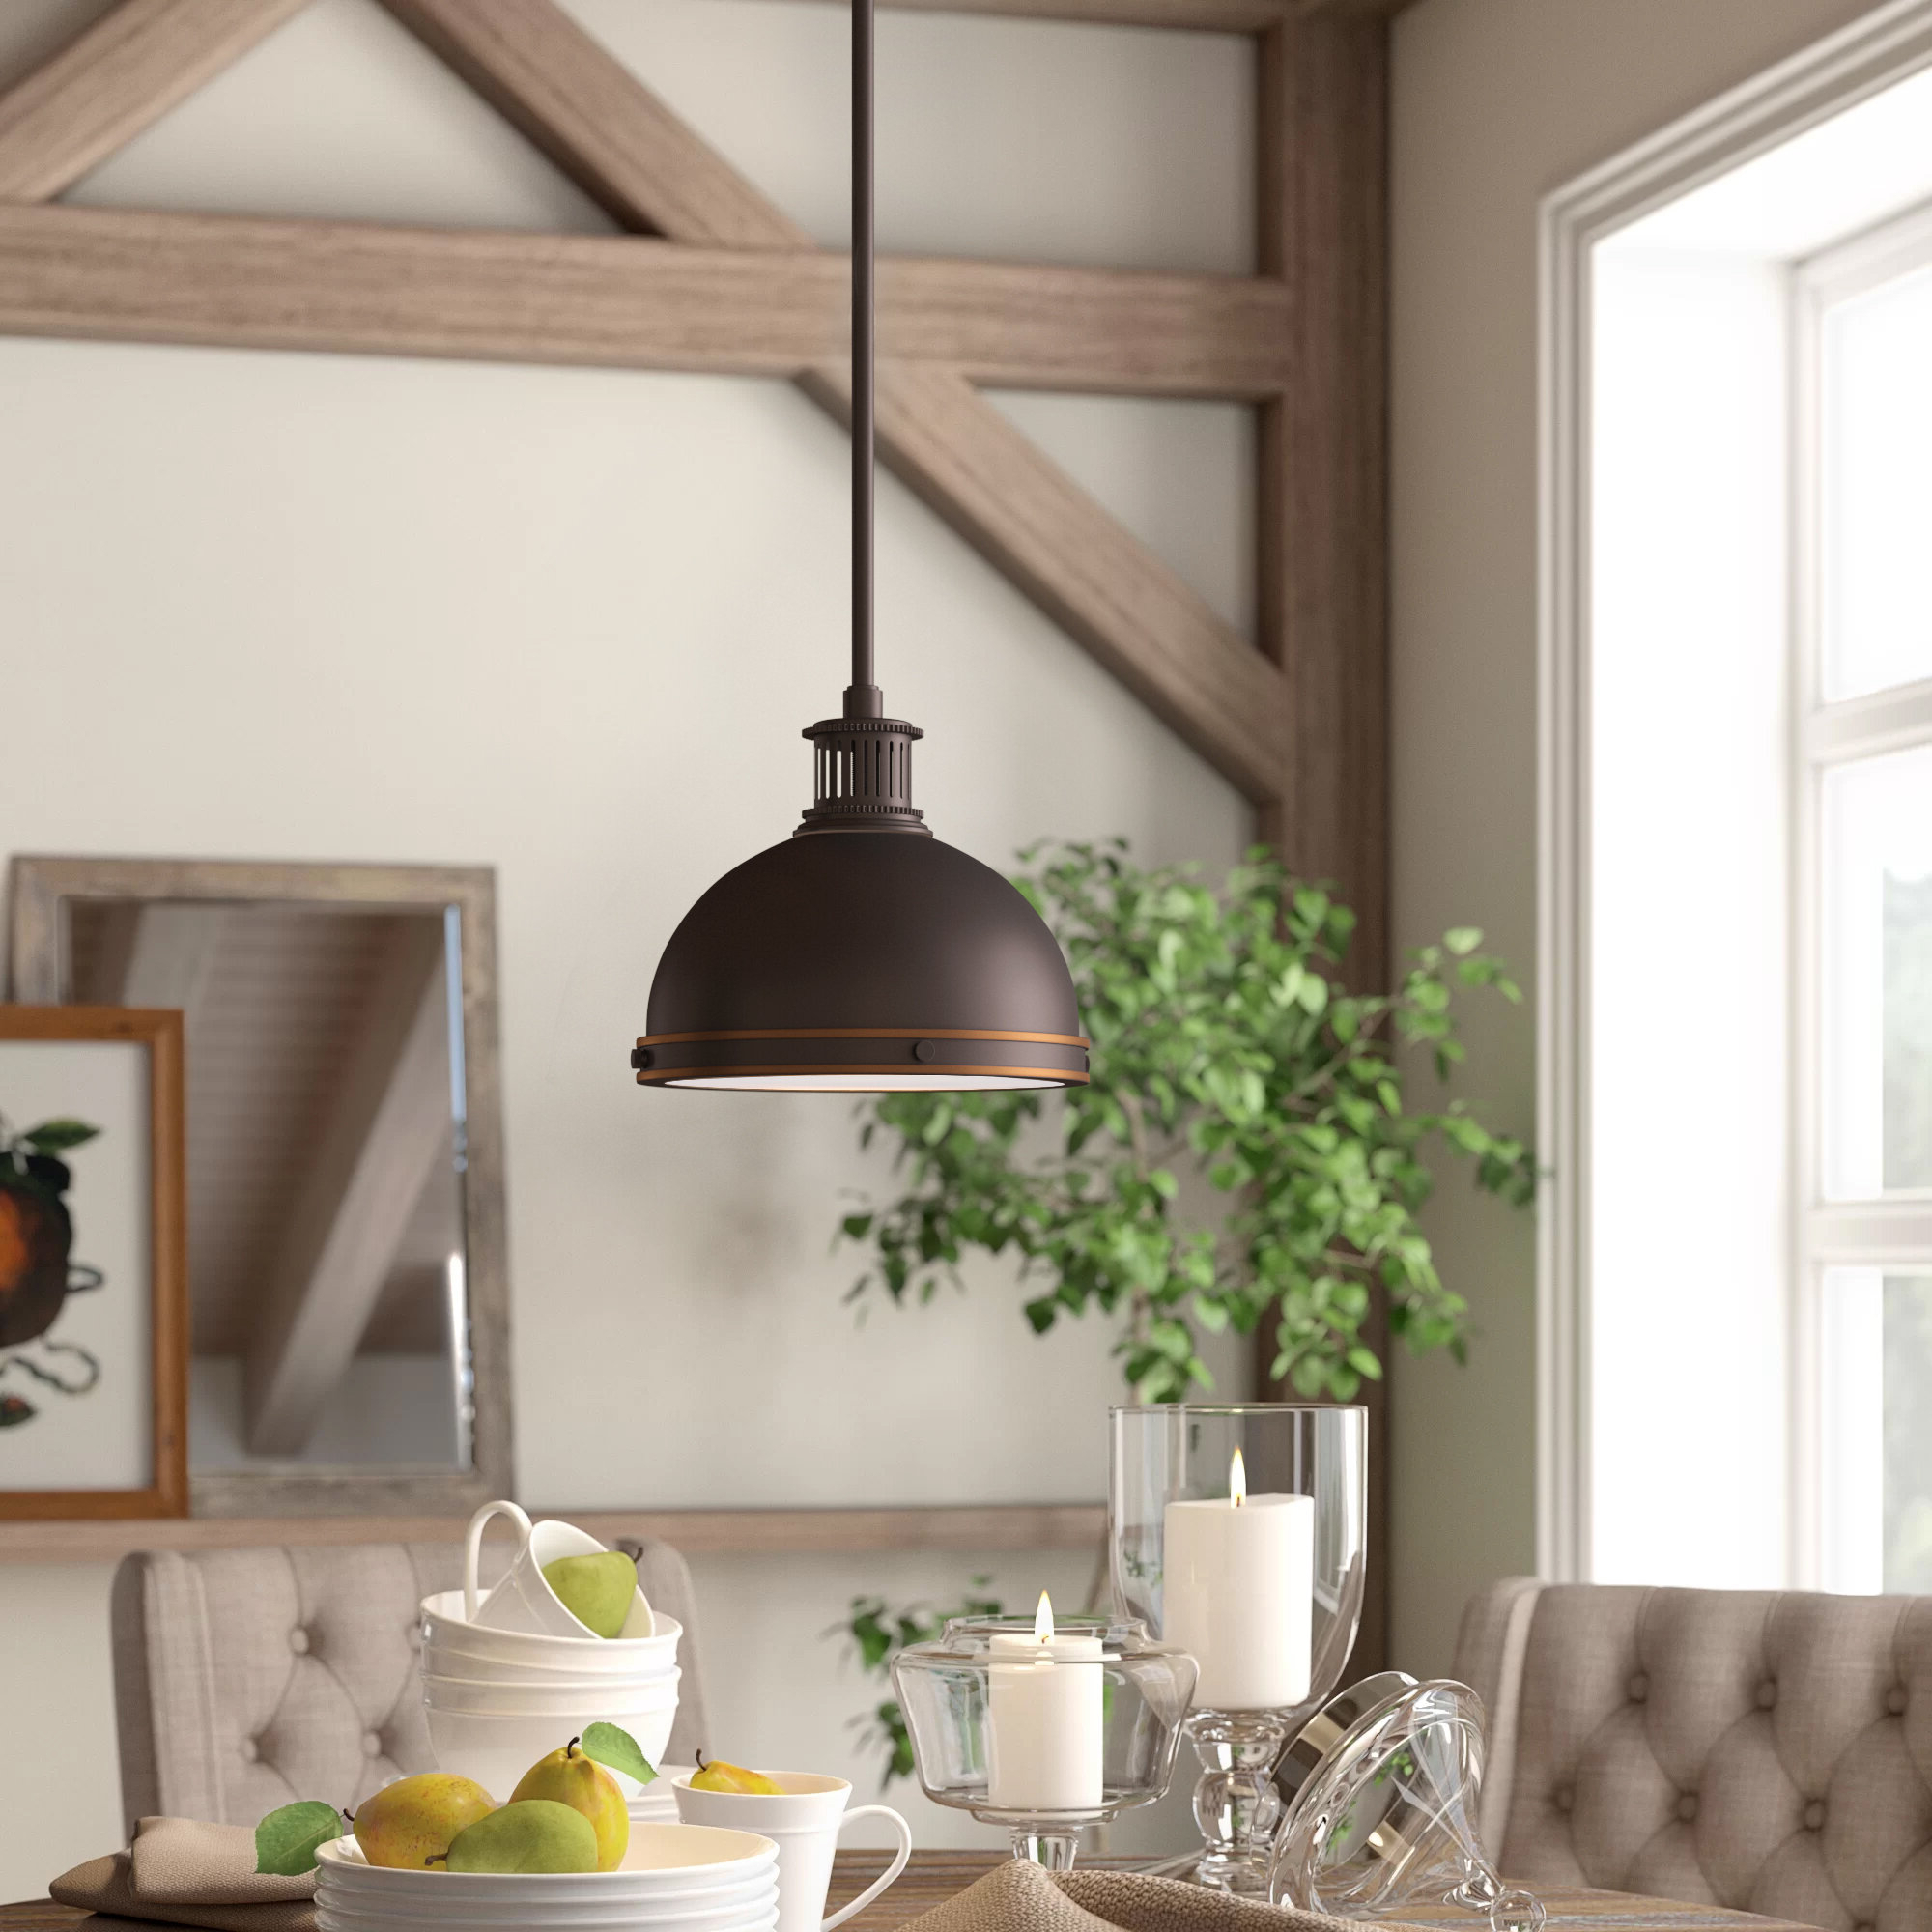 Widely Used Ninette 1 Light Dome Pendants Throughout Orchard Hill 1 Light Led Dome Pendant (Gallery 14 of 20)